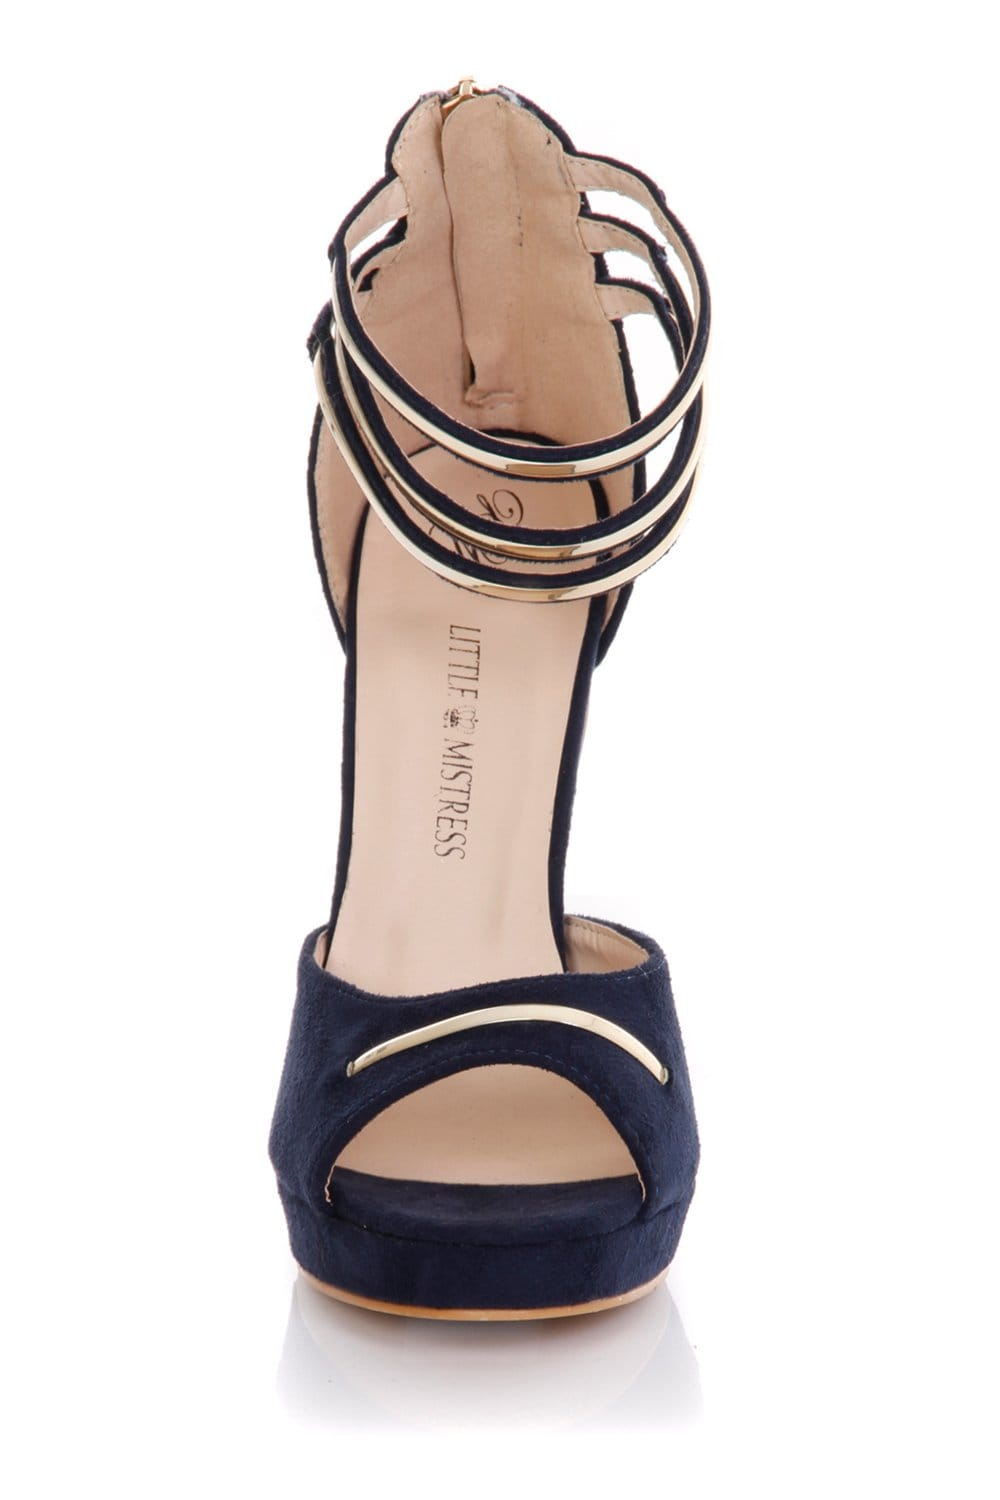 Navy Heels With Ankle Strap